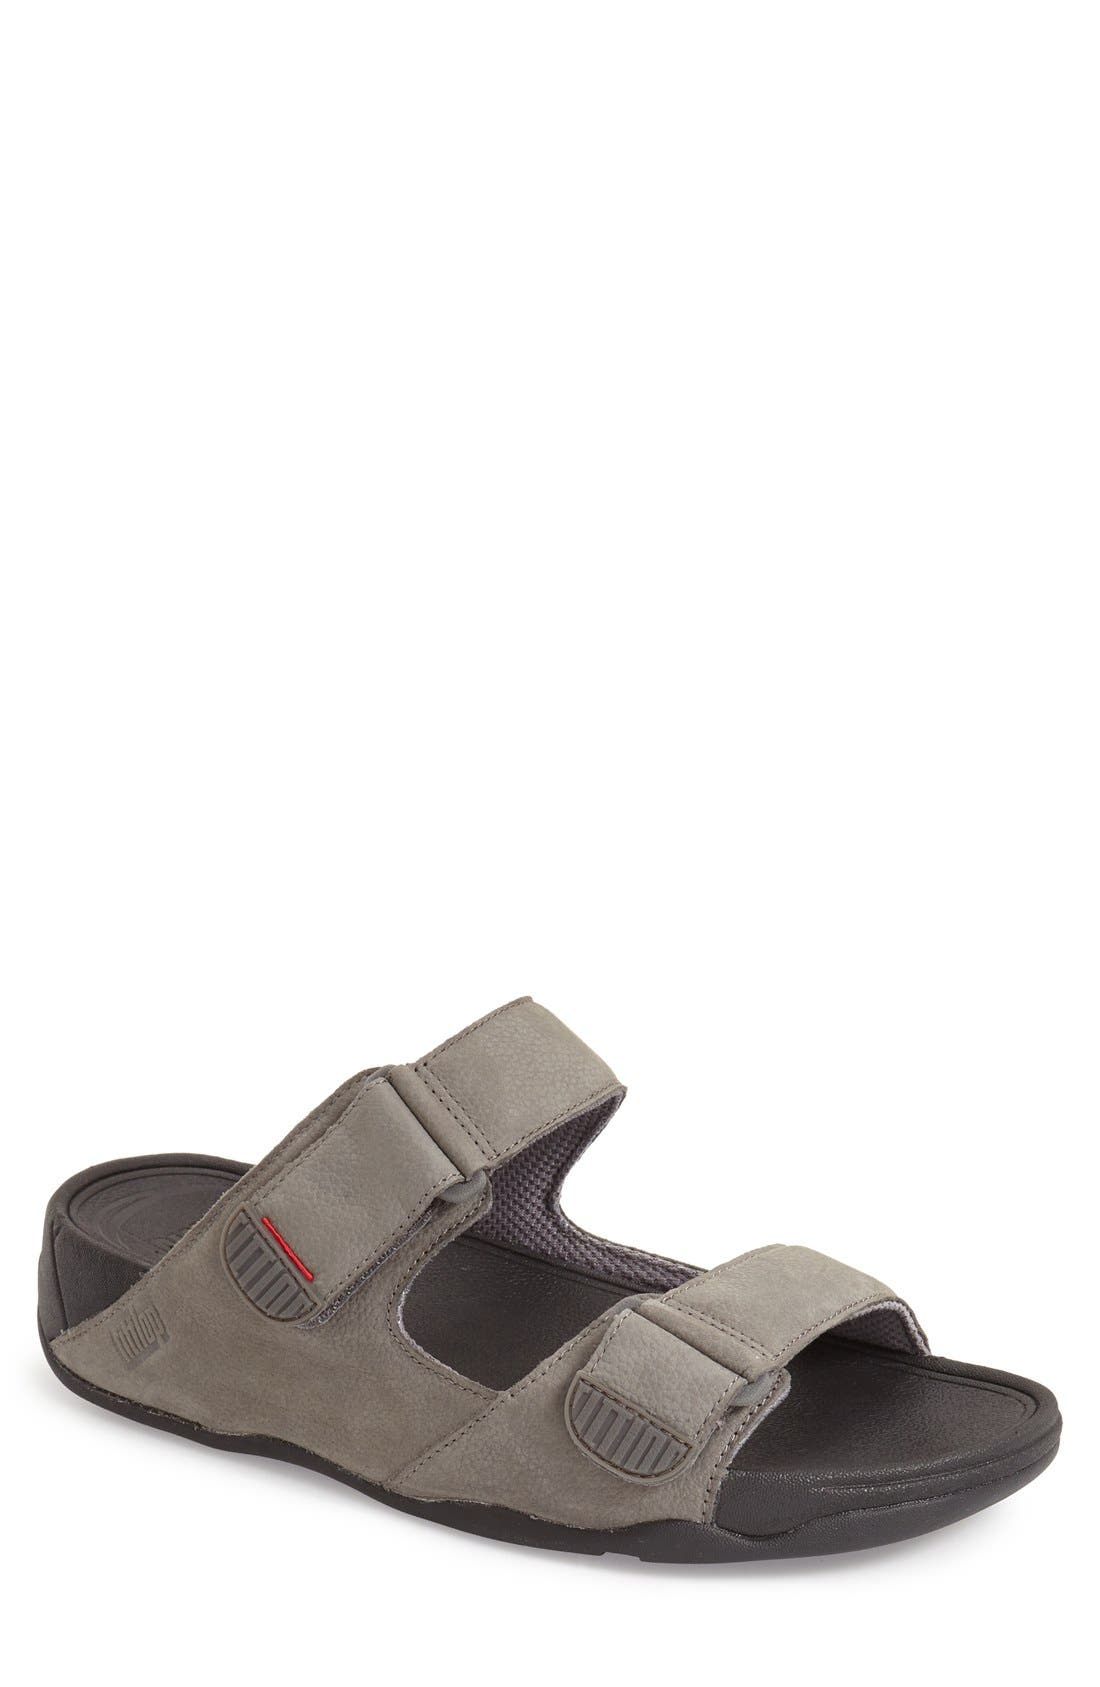 Gogh Sandal,                         Main,                         color, Charcoal Leather